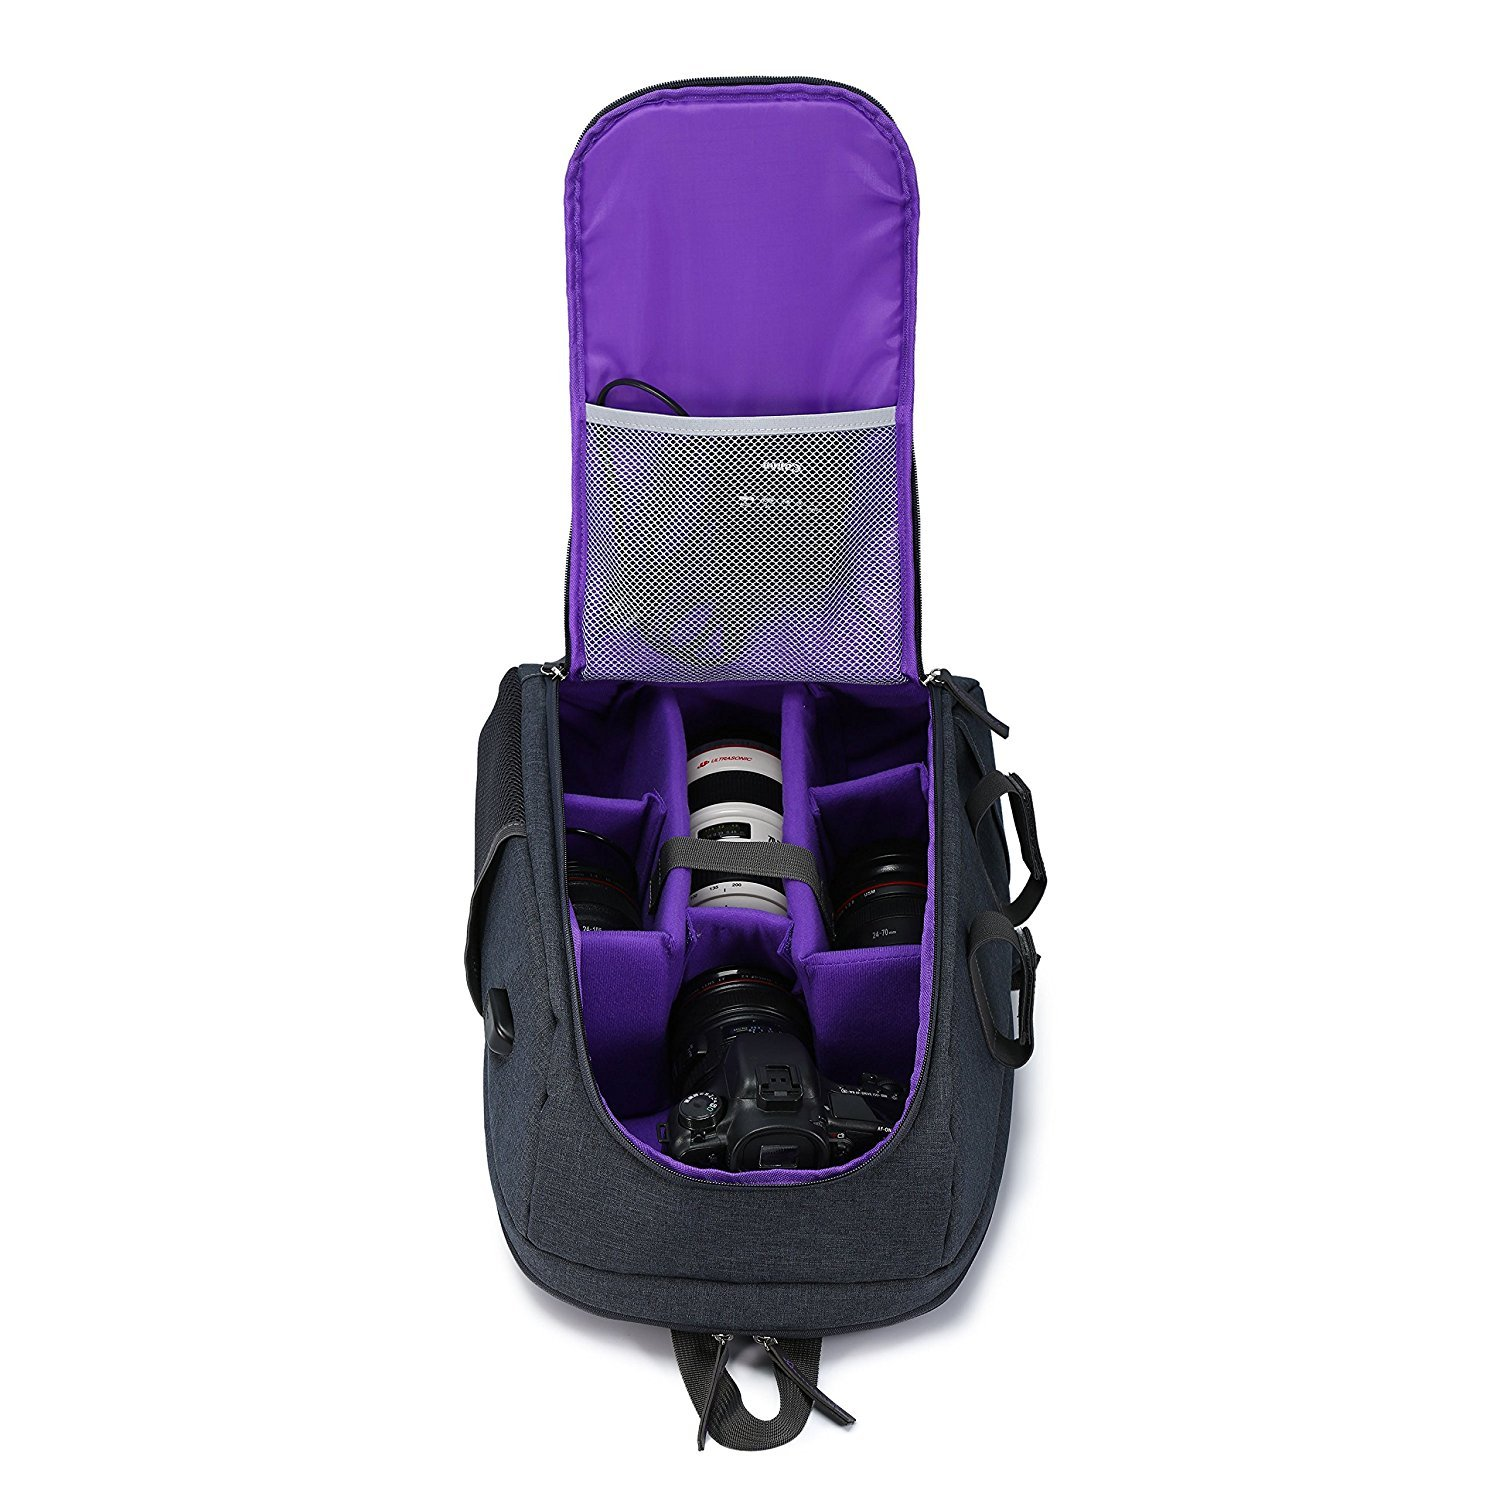 Camera Backpack Bag Waterproof Nylon DSLR Backpack Professional Camera Case with USB External Charging Port for Canon Nikon Sony Camera Accessories and Laptops Tablets Black (Purple)